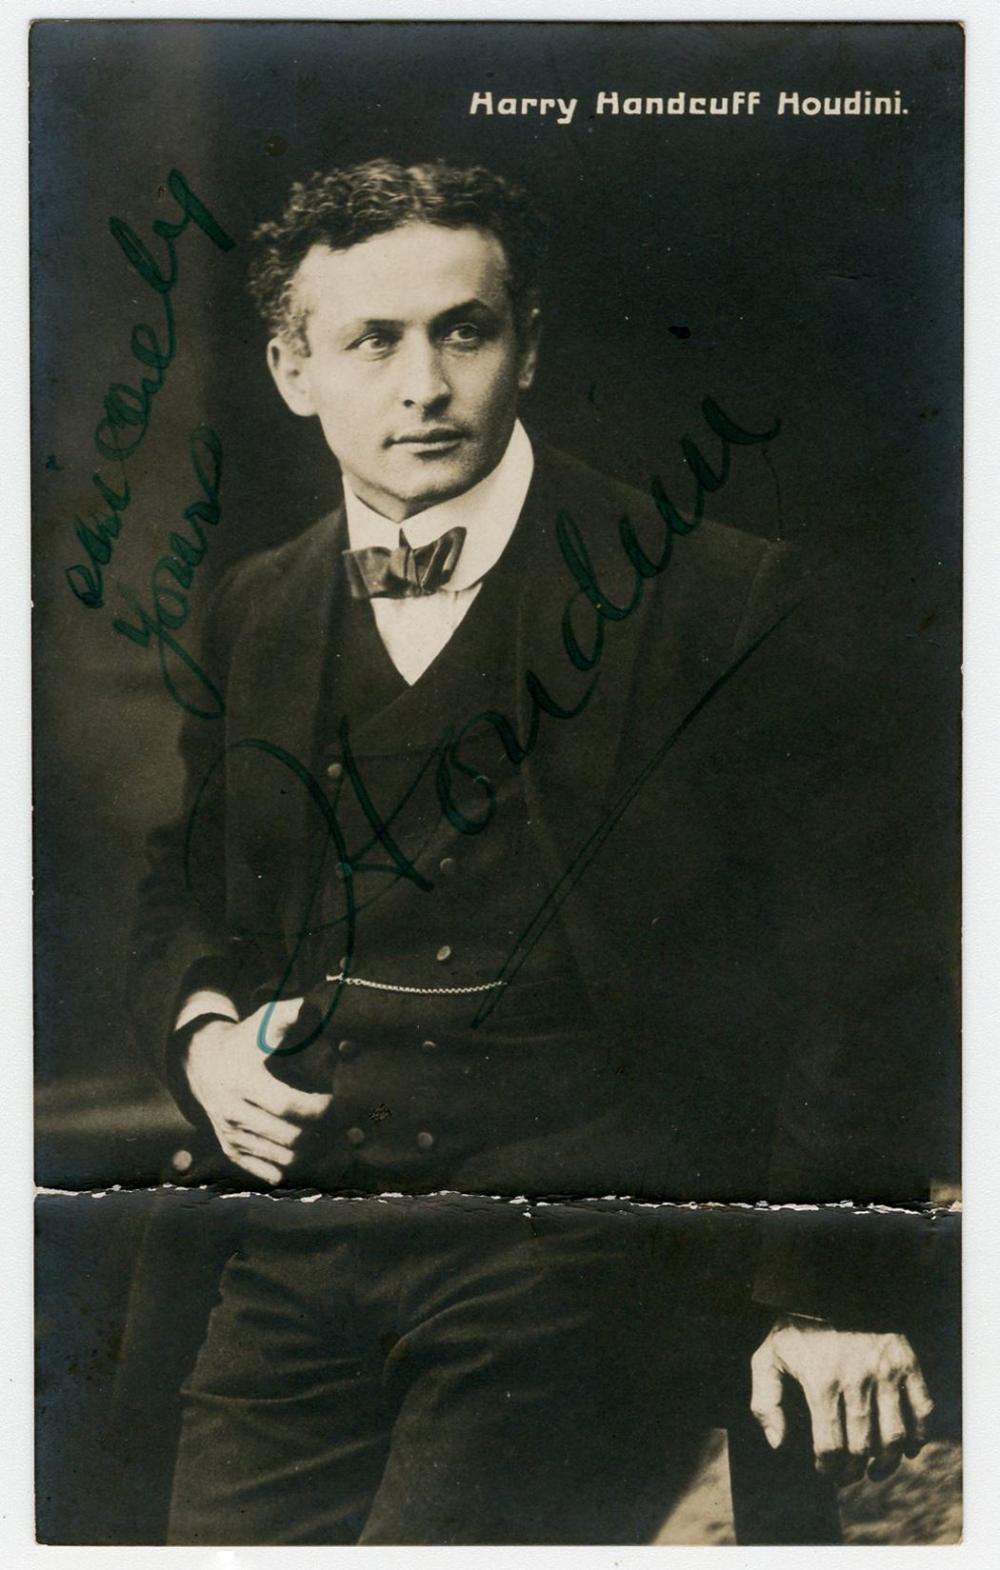 """Harry Houdini Signed Vintage Postcard Photograph from the """"Handcuff"""" Period"""